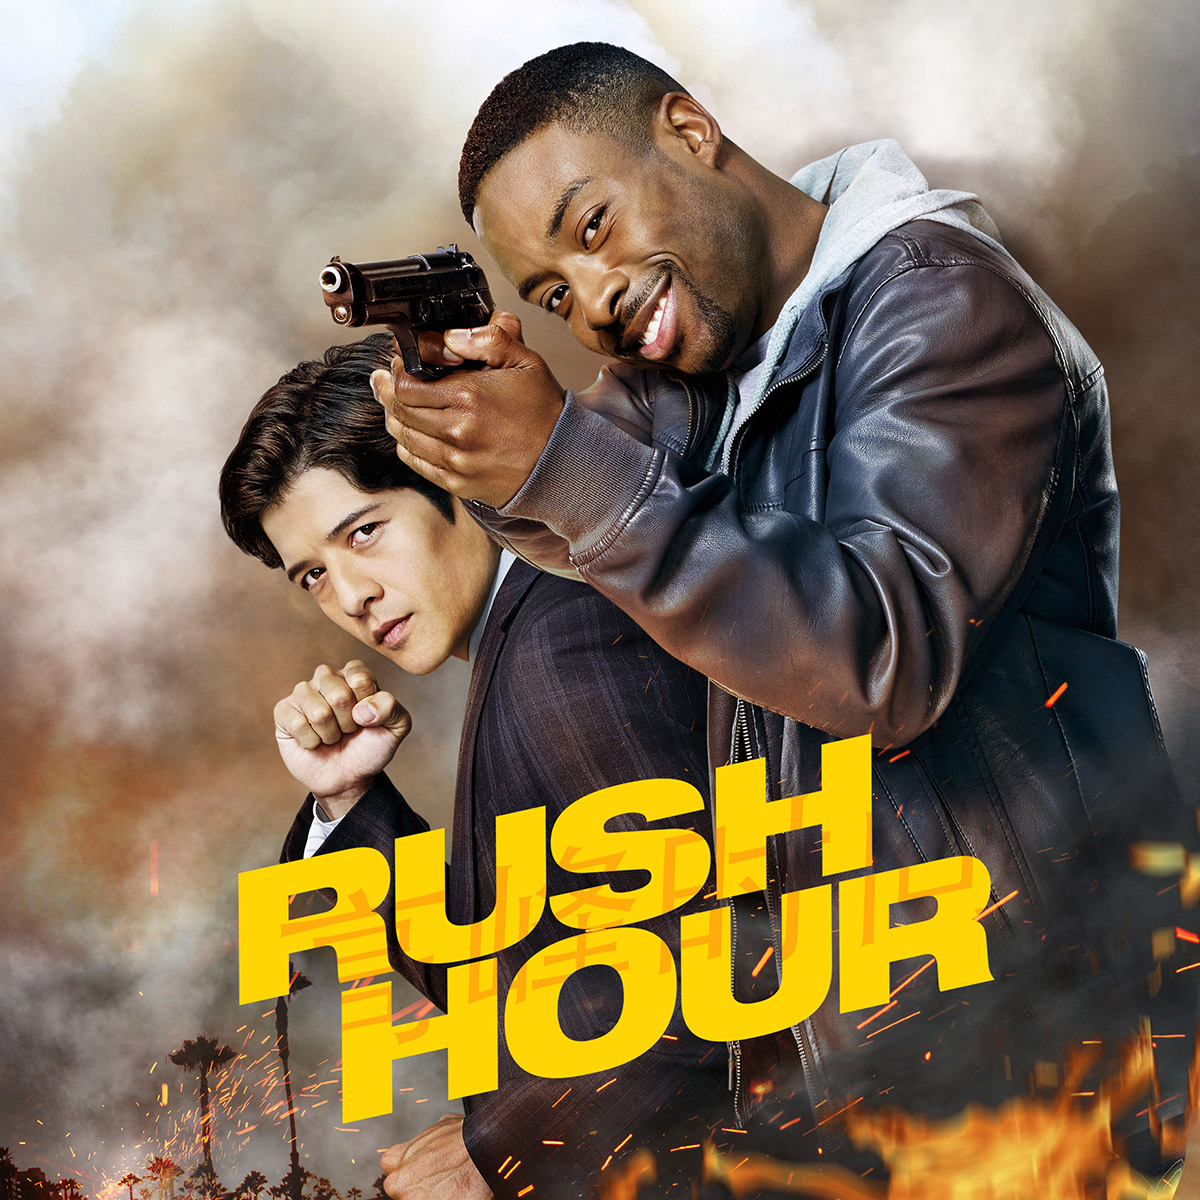 Rush-Hour-TV-series.jpg